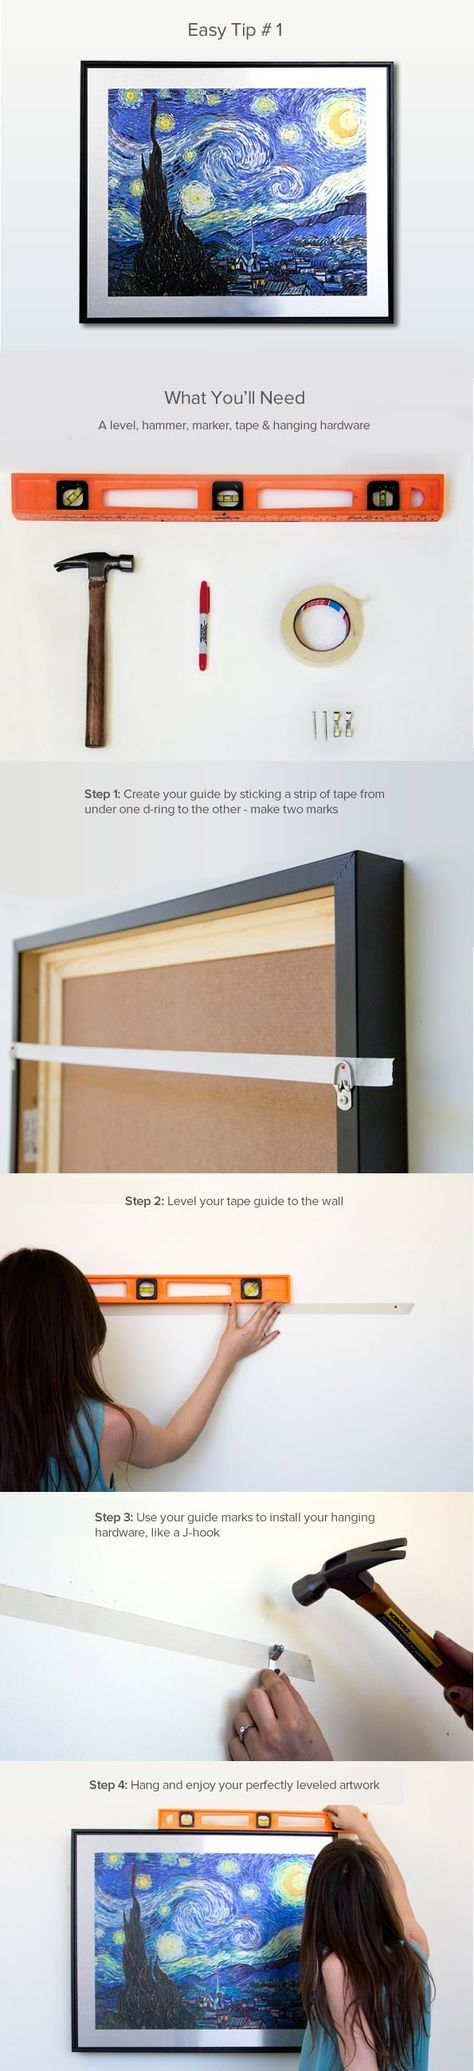 Etonnant How To Hang Level Art Frames: 4 Easy Steps With Pictures